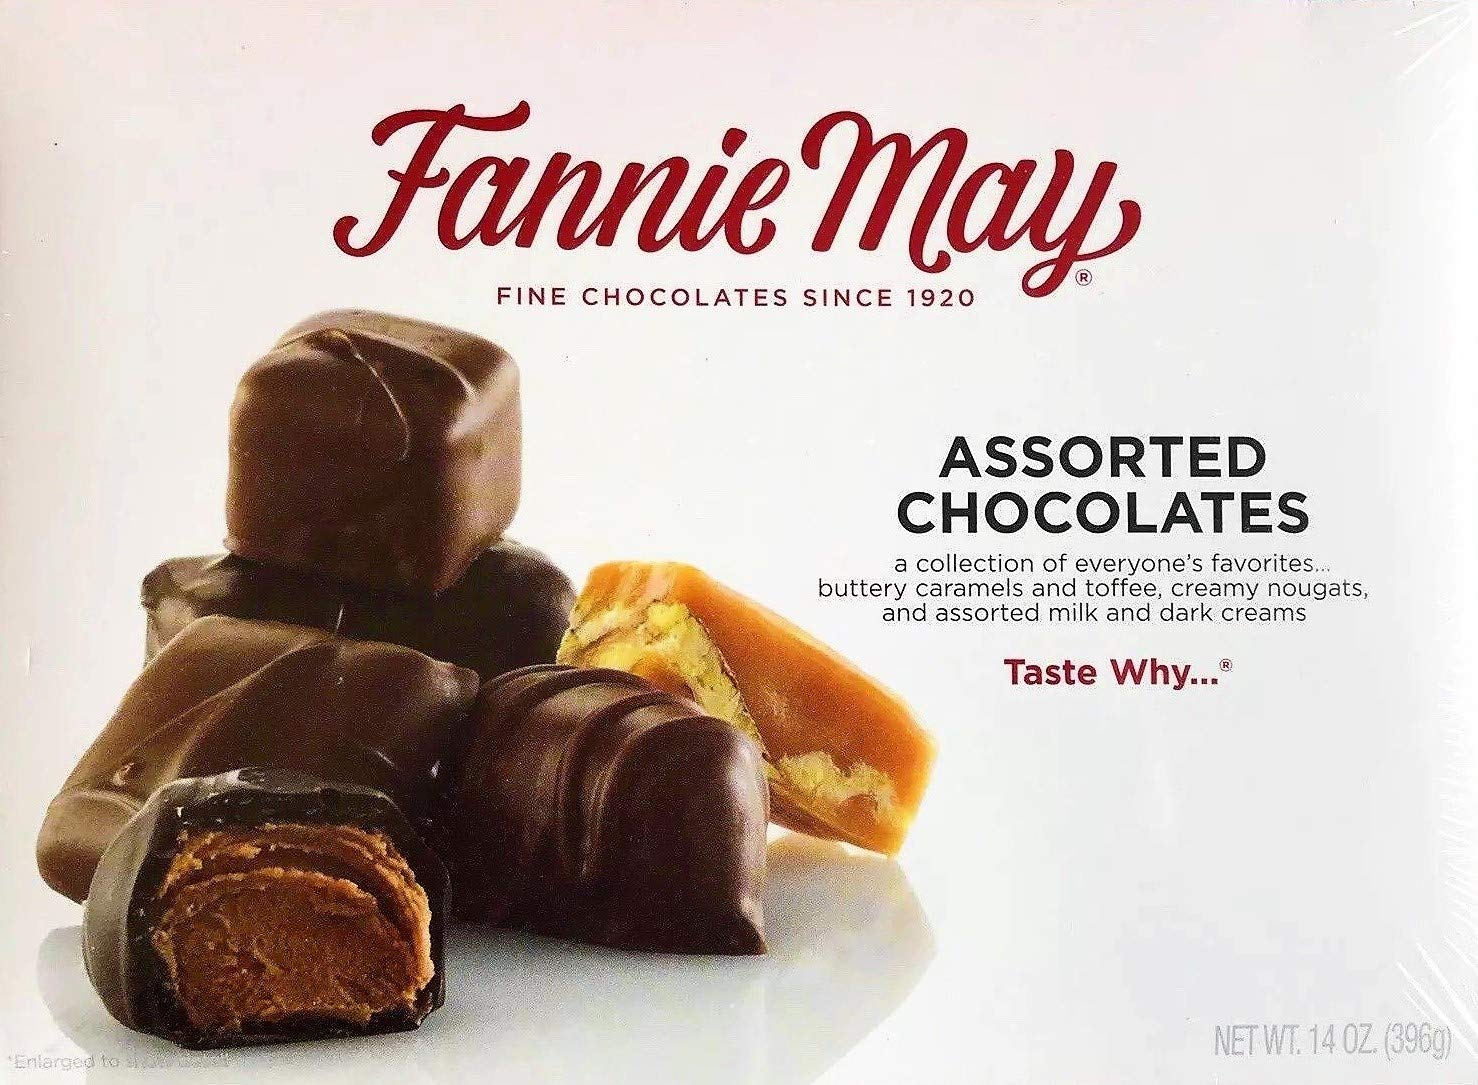 Fannie May Assorted Cash special price 14 oz Max 75% OFF Chocolates